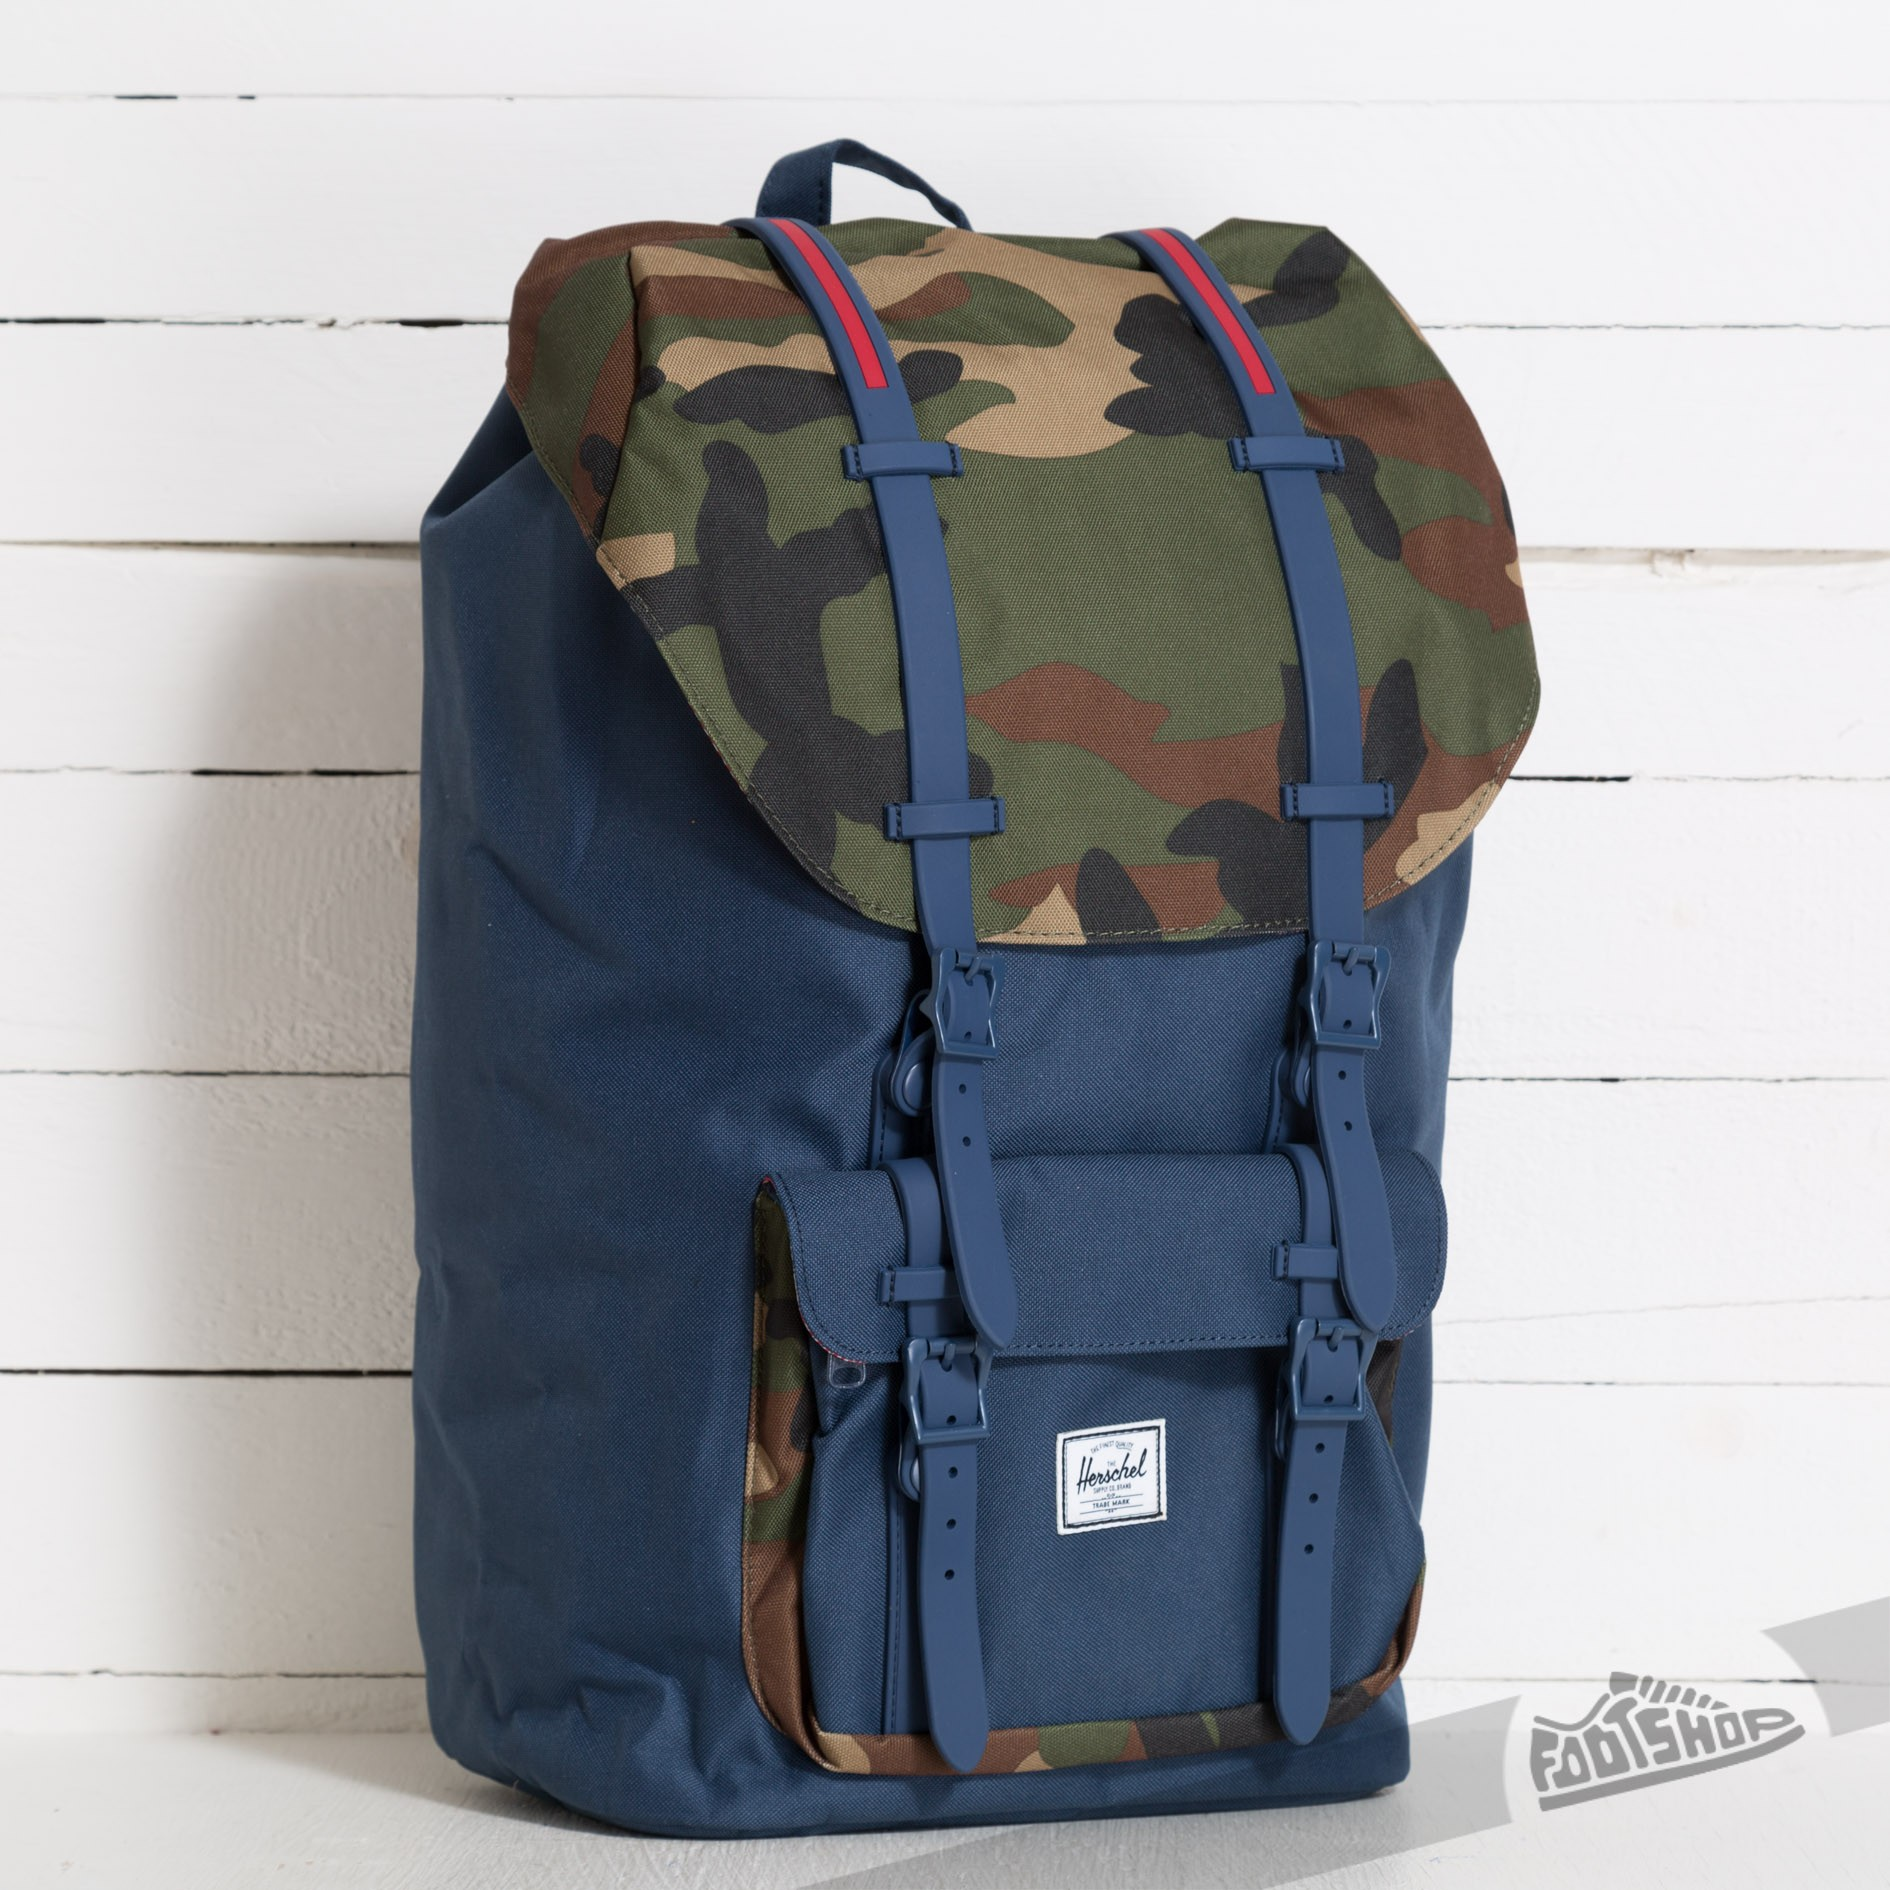 5a2681aeaec Herschel Supply Co. Little America Backpack Navy Woodland Camo ...